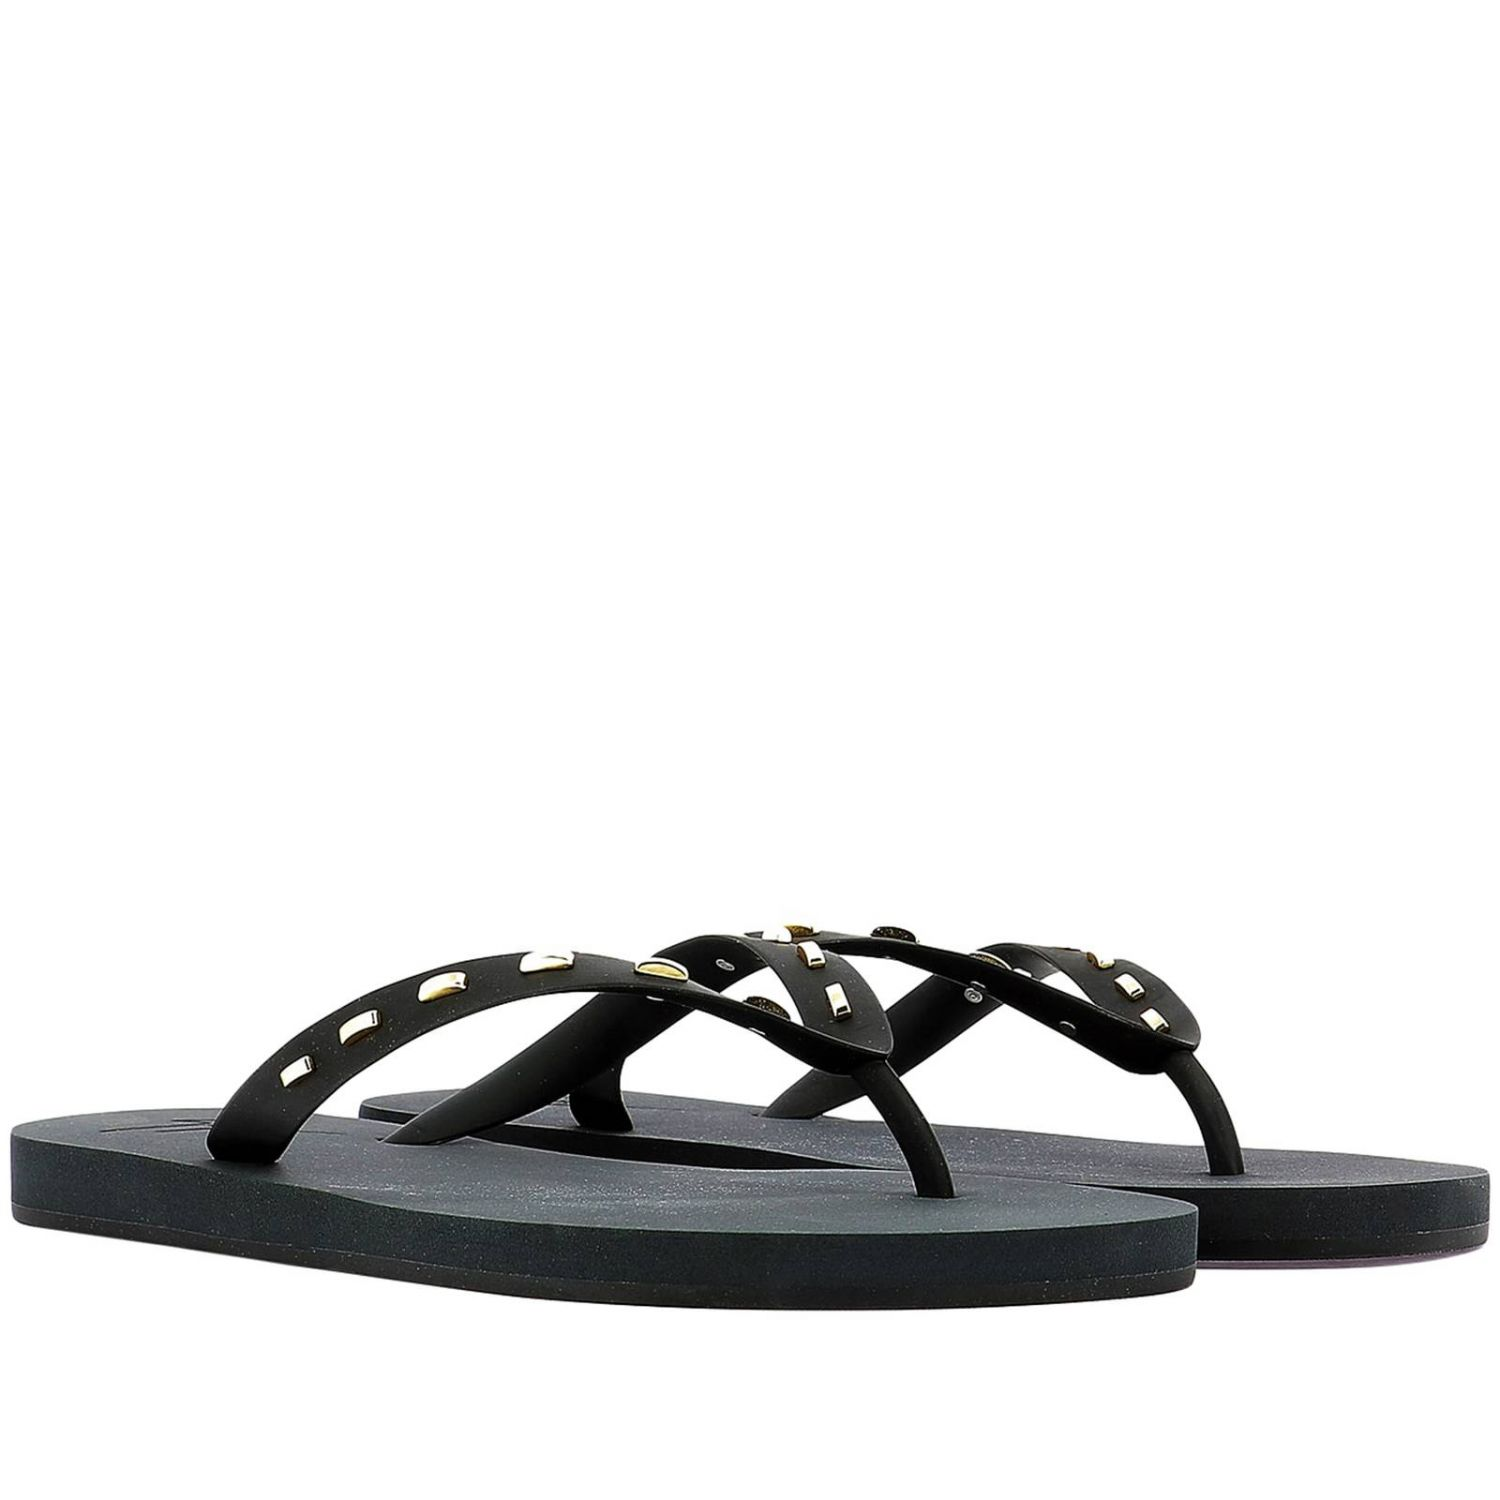 Sandals men Giuseppe Zanotti Design black 2